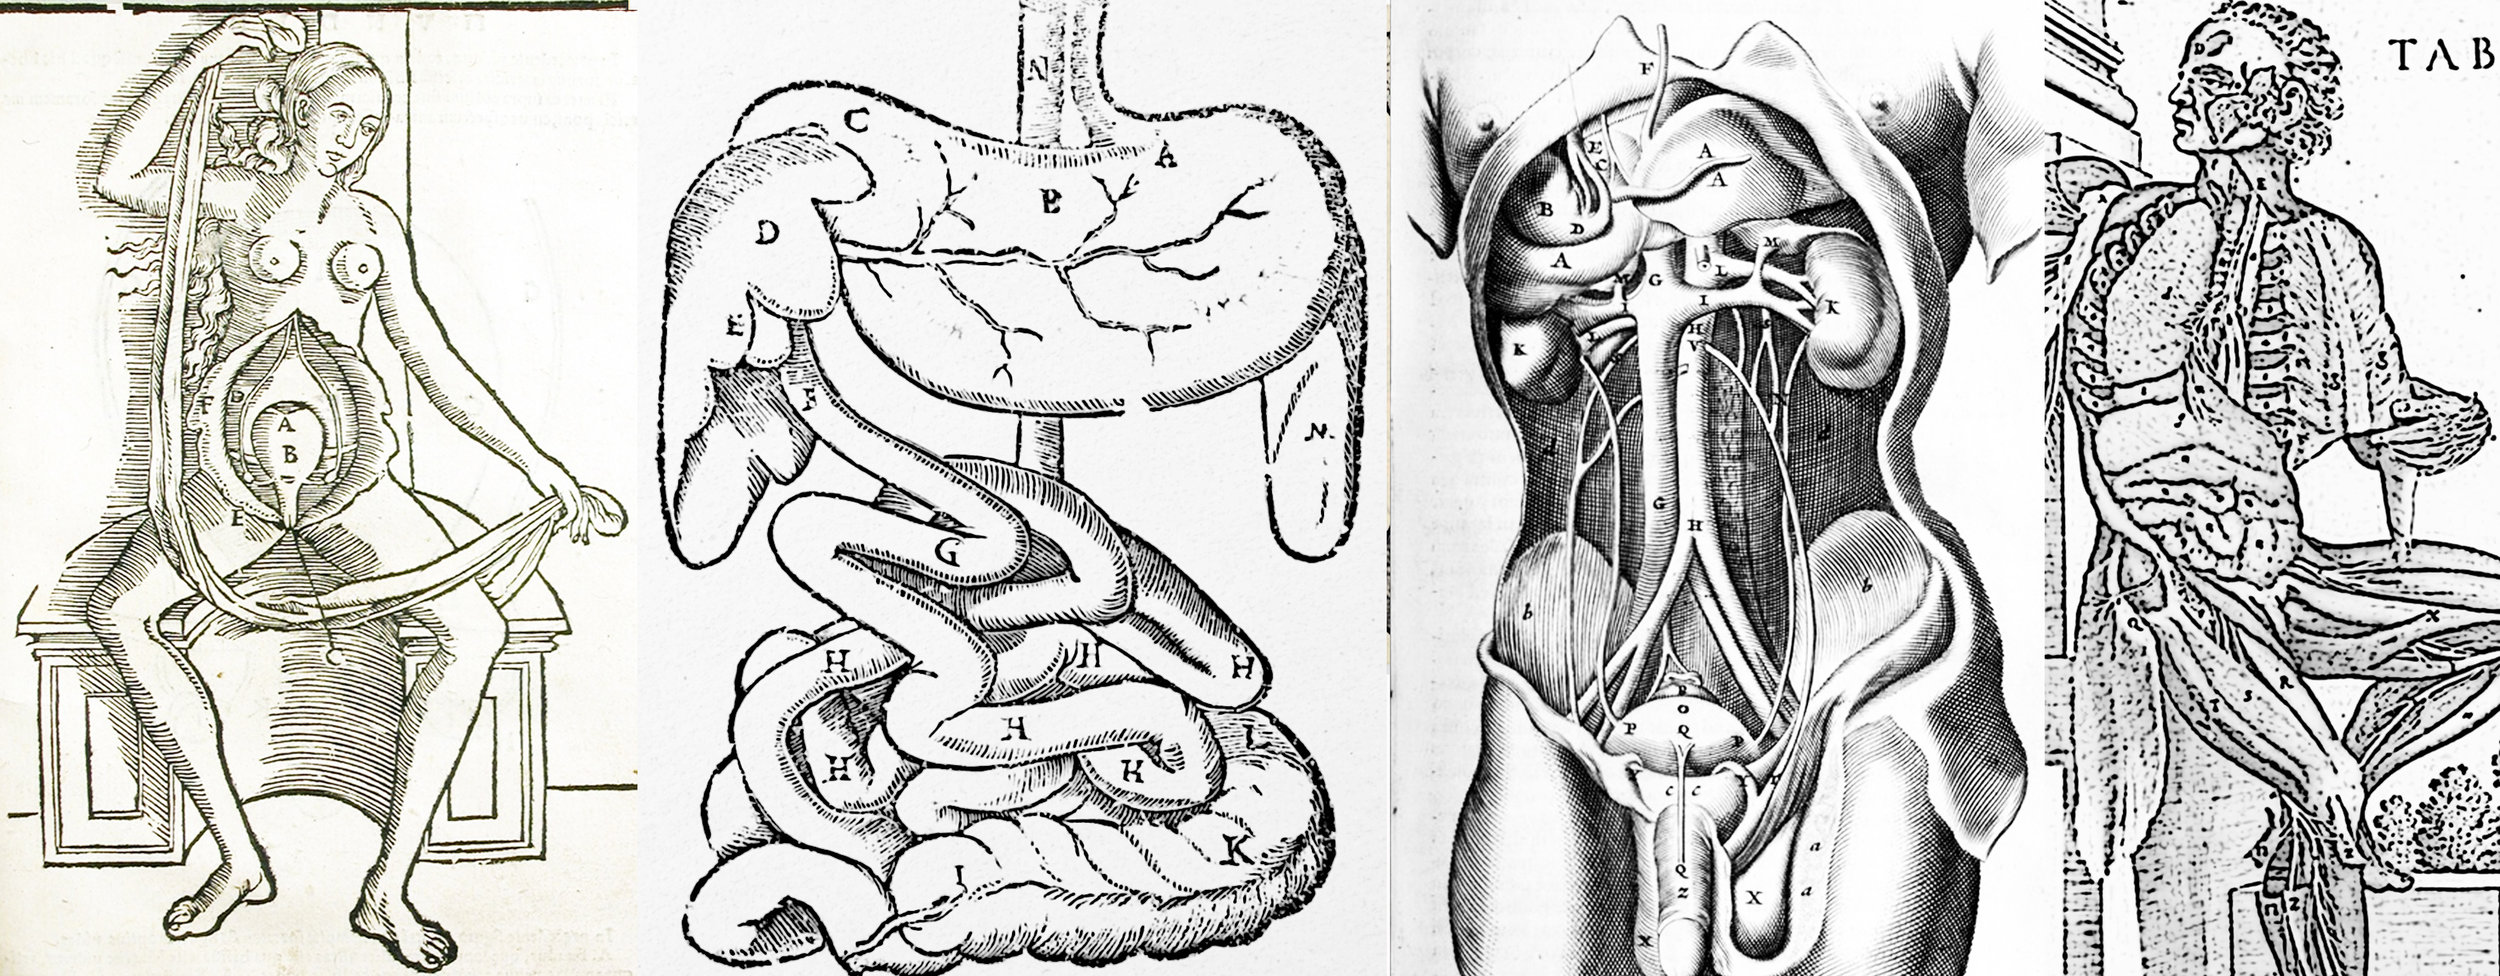 7 BLOG internal organs3.jpg